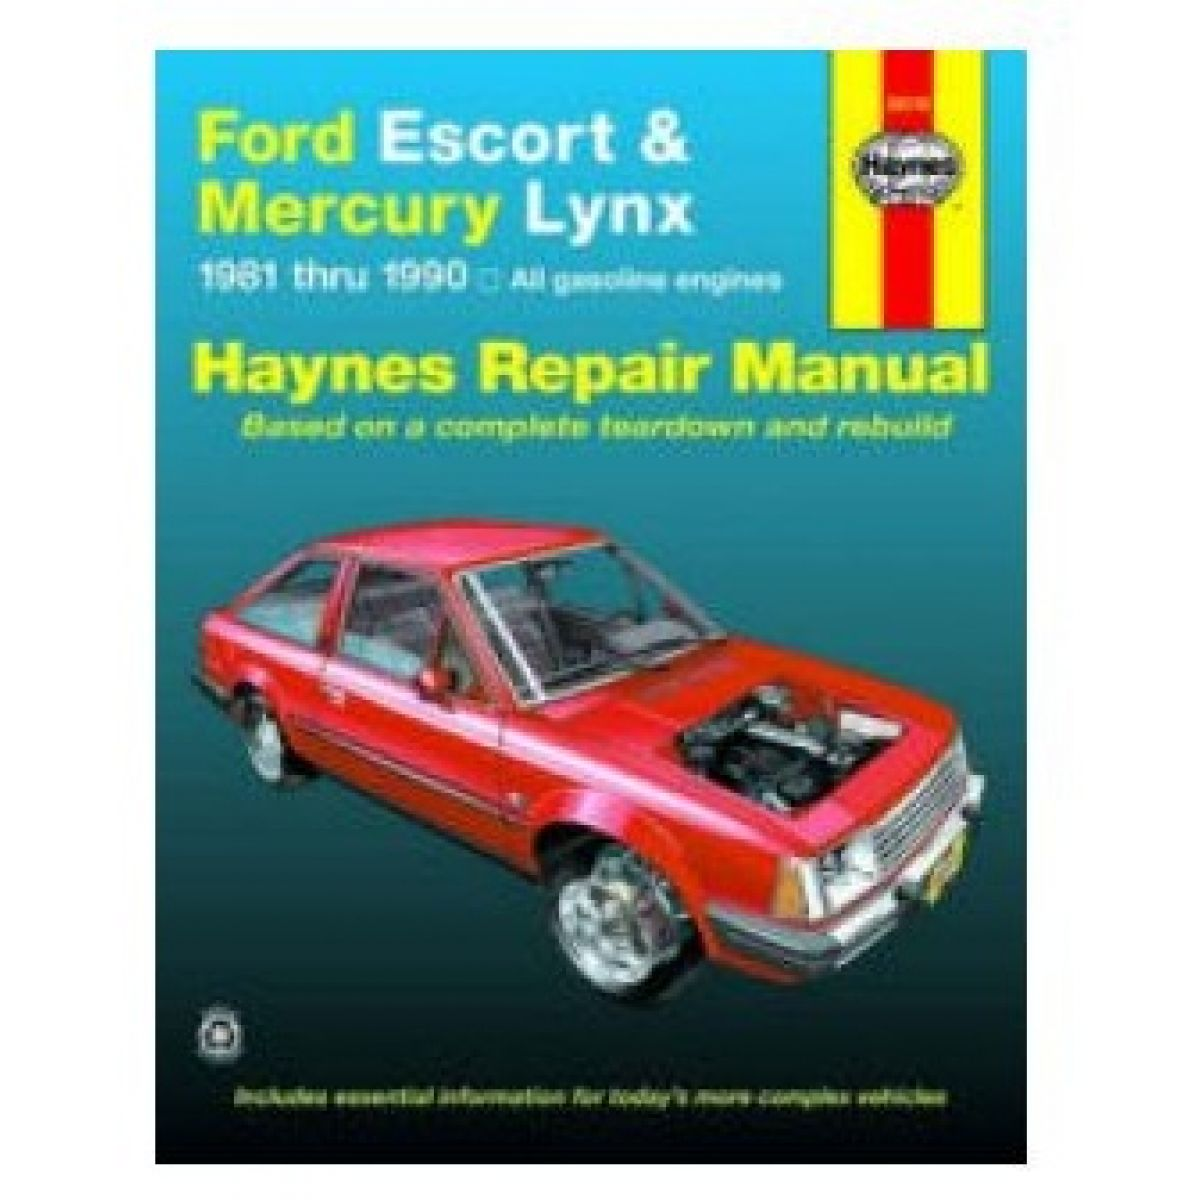 Haynes Repair Manual for 1981-1990 Ford Escort Mercury Lynx